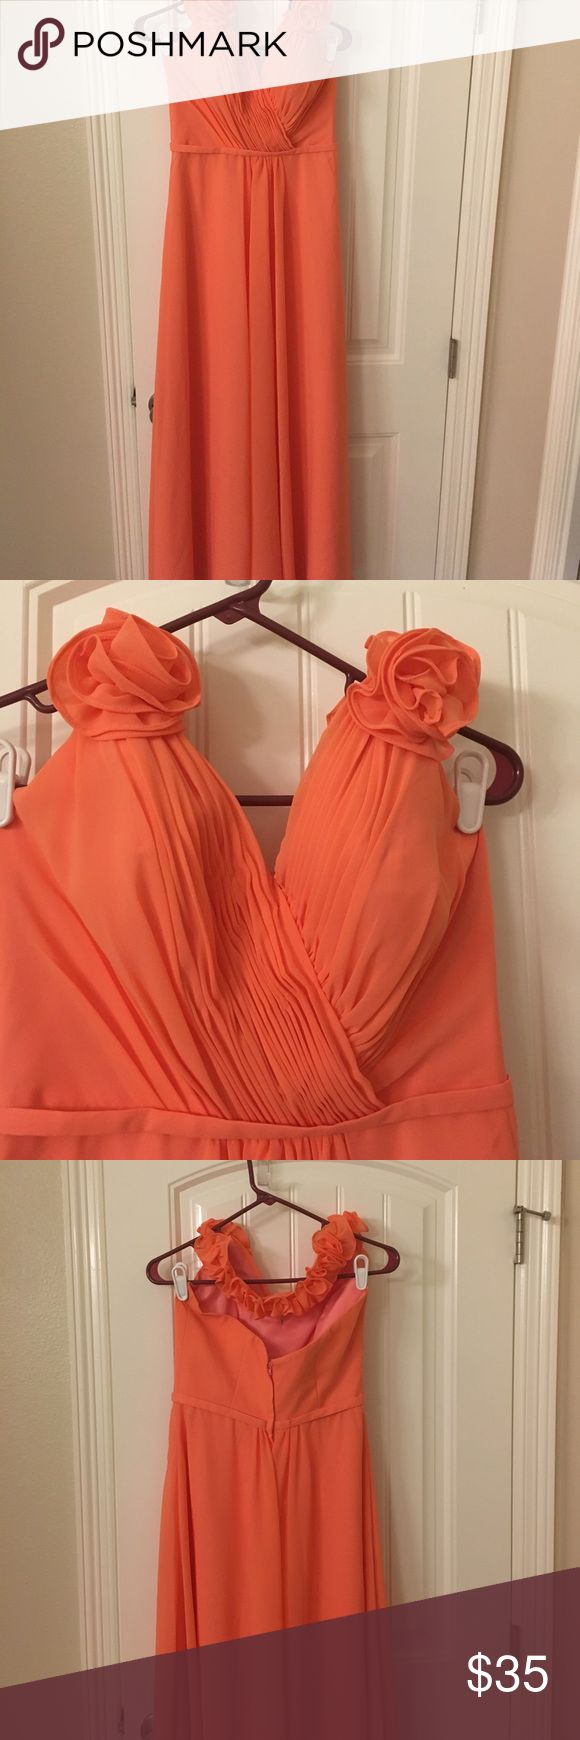 Event Dress. Size 6. Pink/Salmon color Bridesmaid/event dress. Only worn a few hours. I'm 5'8 and fit perfect length with flats. Good condition. See photos for details. Dresses Wedding